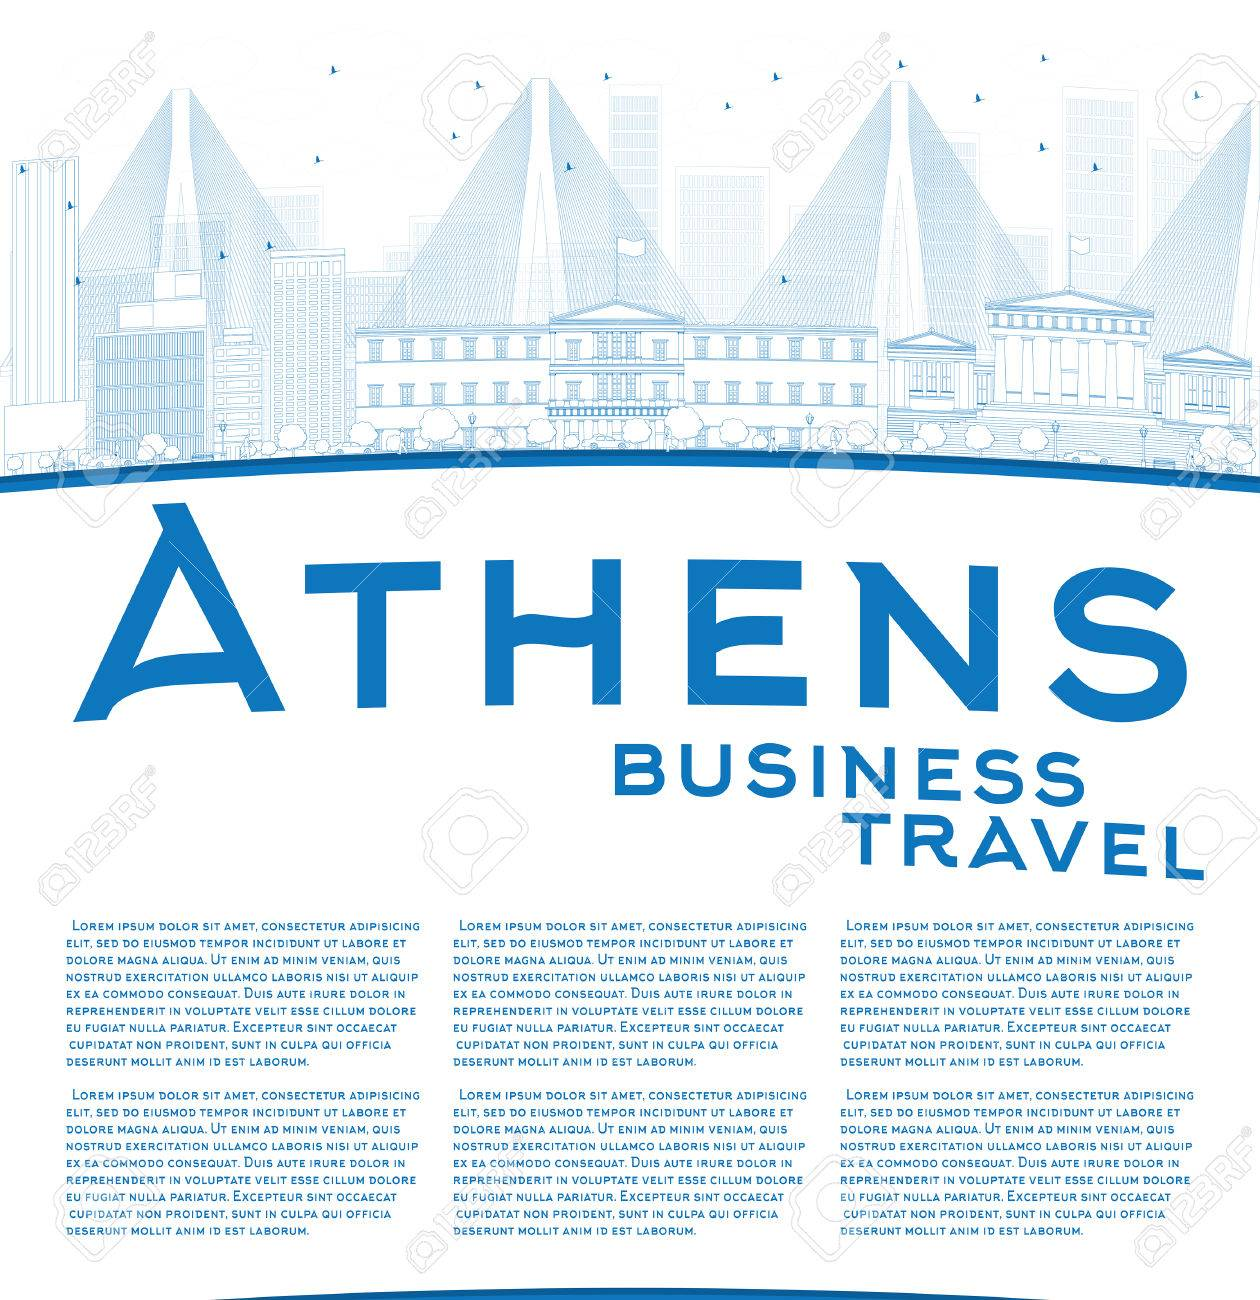 Outline athens skyline with blue buildings and copy space stock vector - Outline Athens Skyline With Blue Buildings And Copy Space Business Travel Concept Vector Illustration